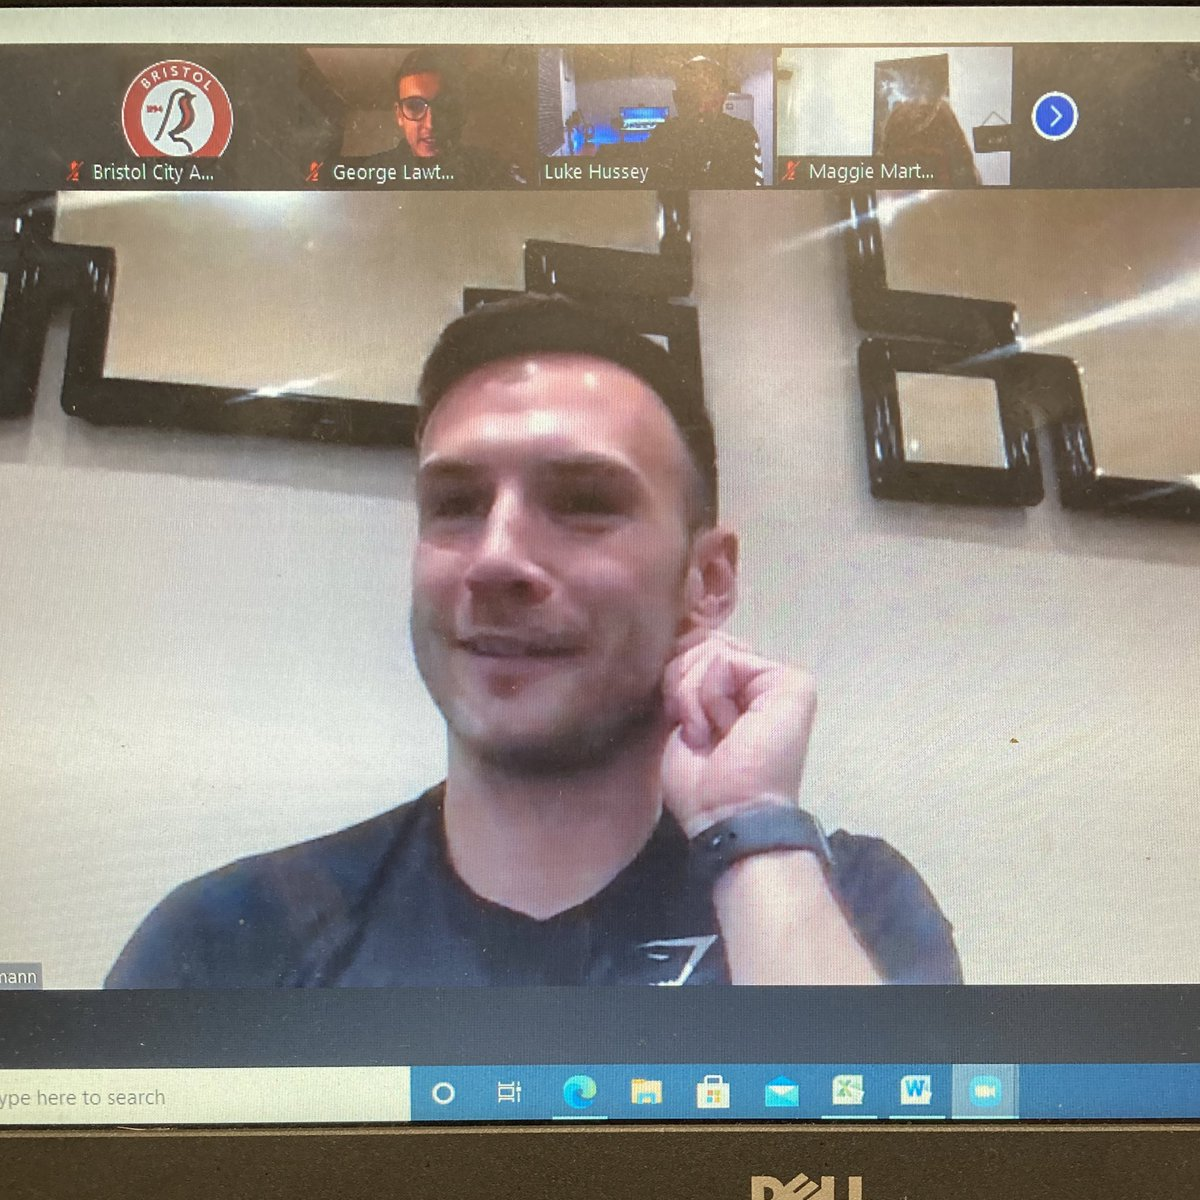 A record-equally night on Zoom as 110 of our players logged in to hear @andiweimann give us an amazing insight into the ups and downs of a professional football career 👌🏼⚽️  All to play for next week with our third guest... can he reach 111 listeners 👀?  #BristolCity https://t.co/Gr5jhGt2H8